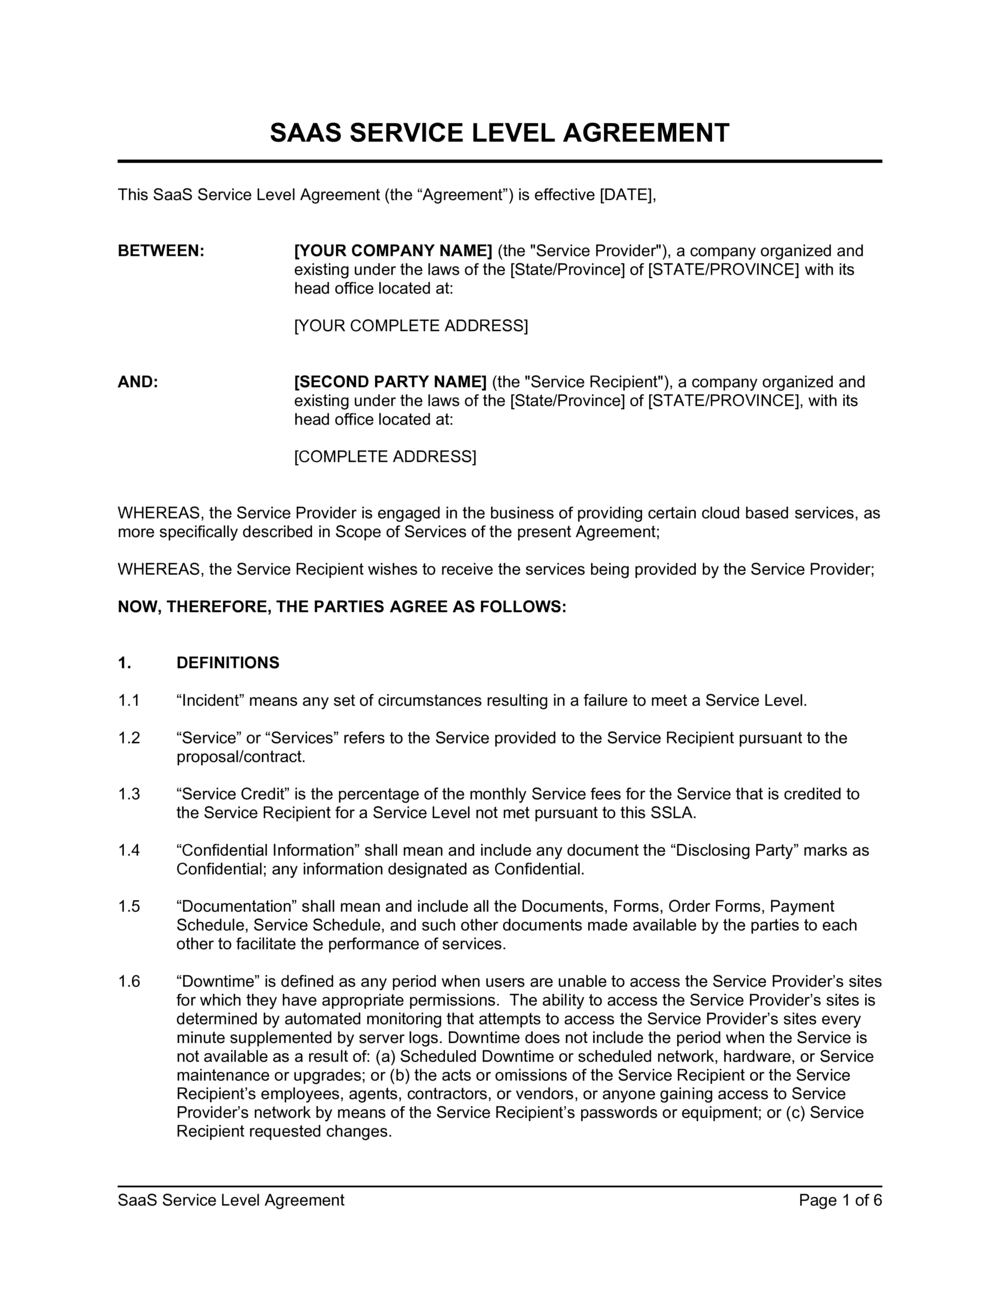 Business-in-a-Box's SaaS Service Level Agreement Template